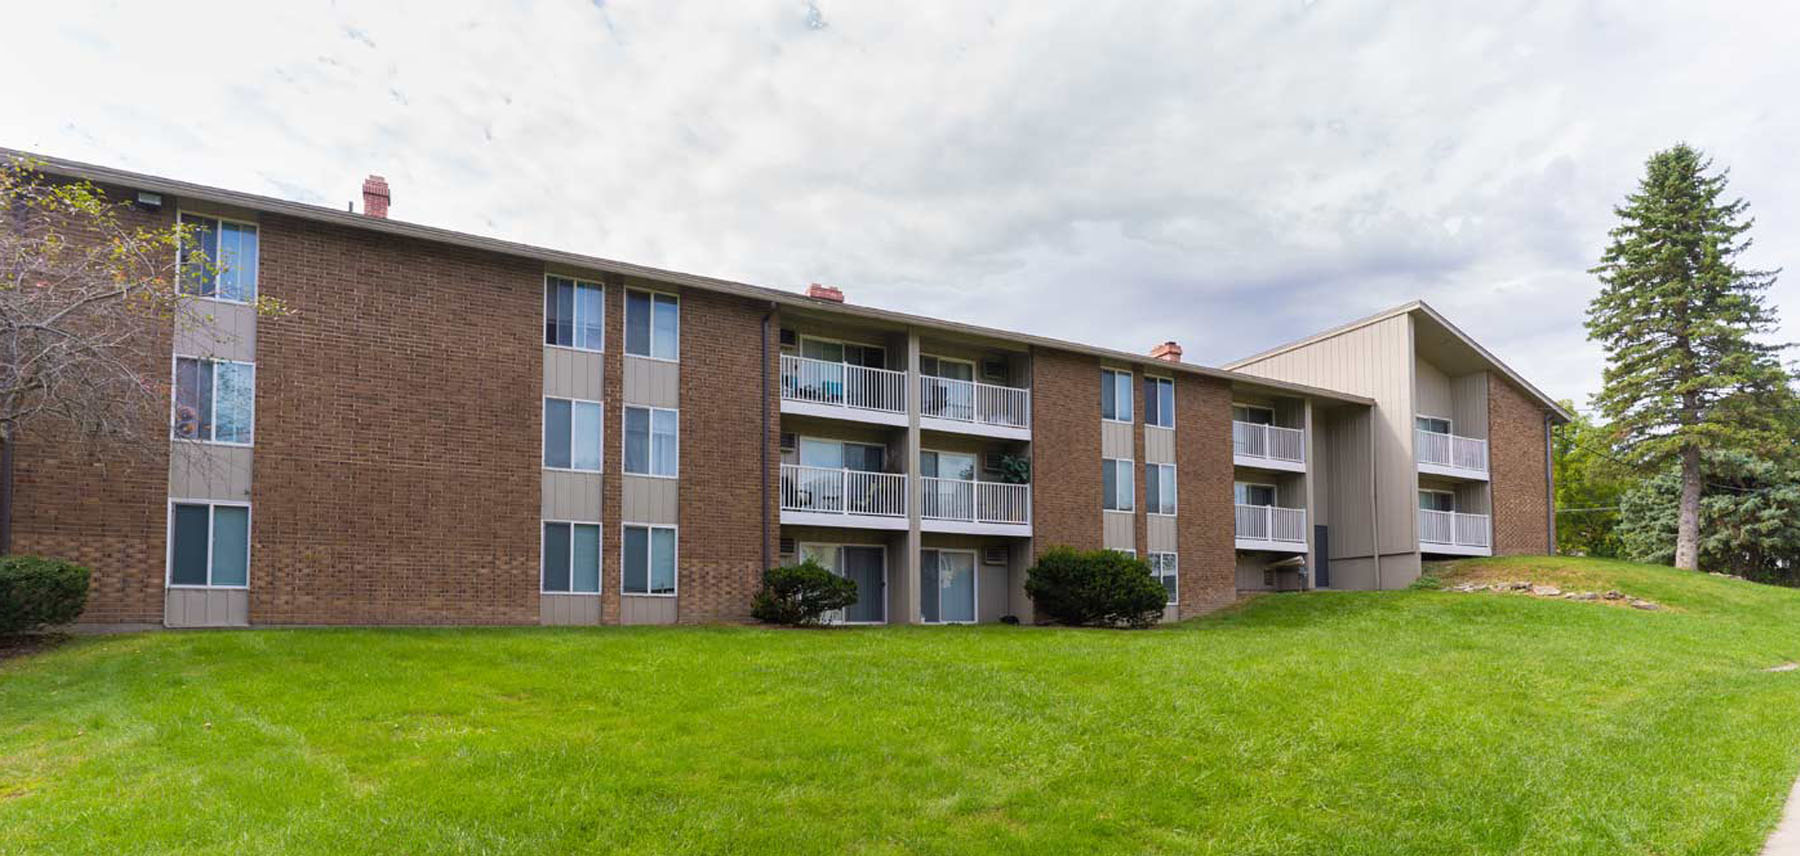 Woodhaven Apartments